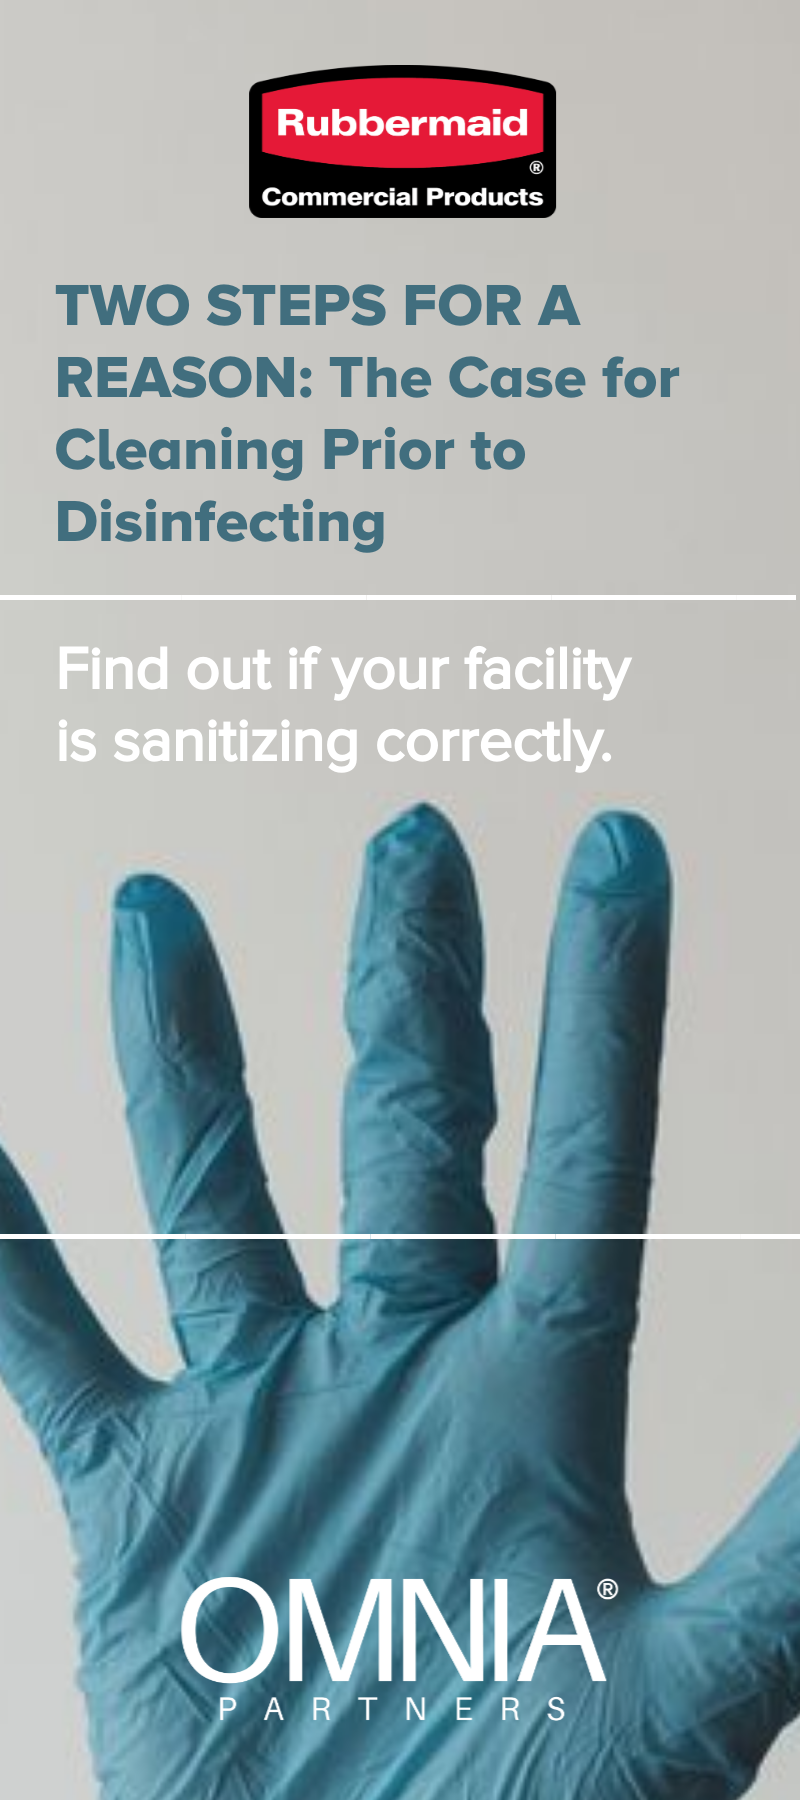 Learn why facilities should clean before disinfecting